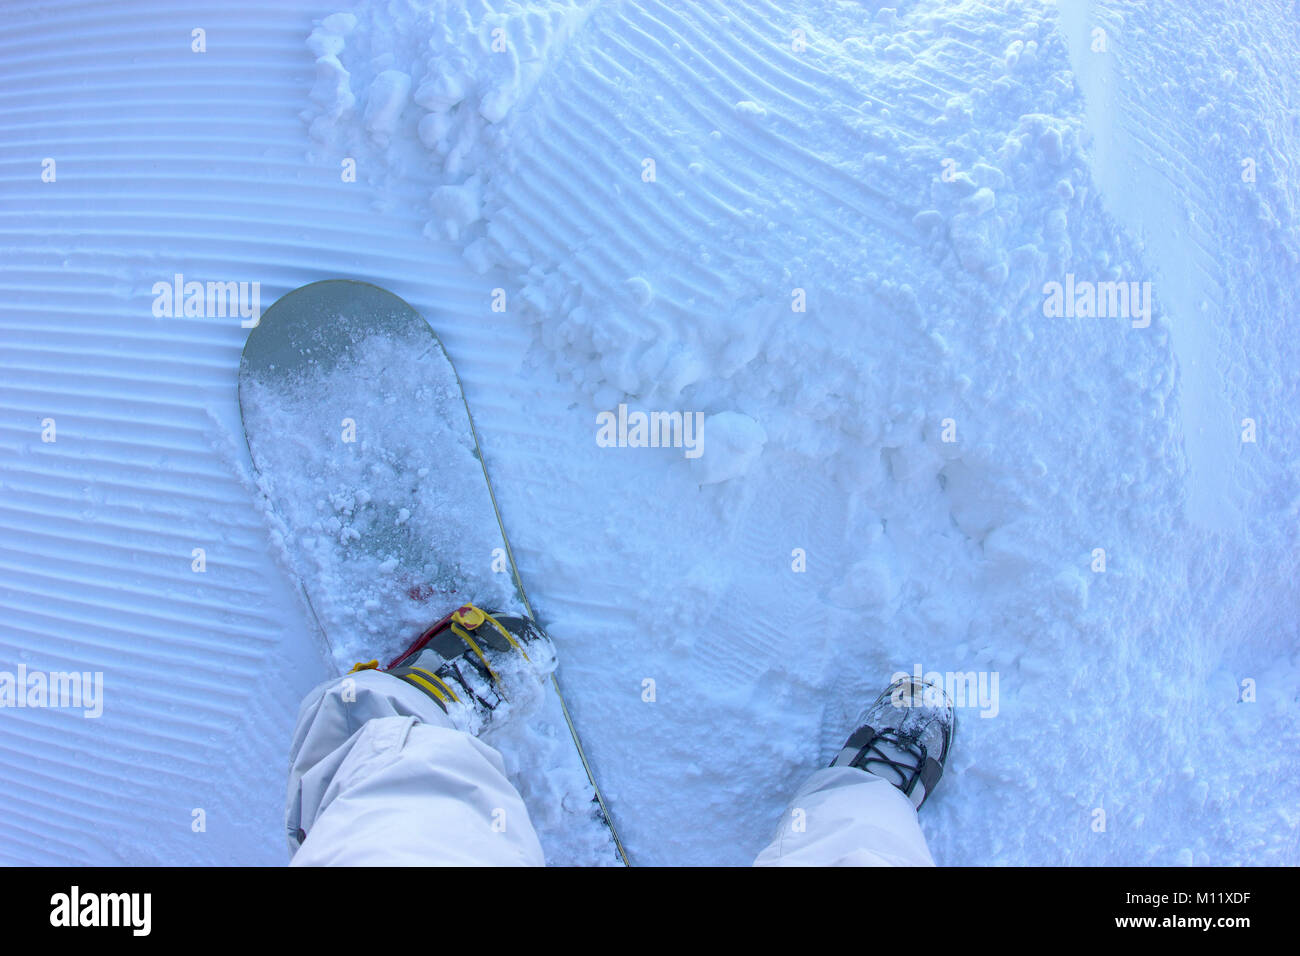 an unusual shot of a snowboarder standing on the snow piste getting ready to ride - Stock Image